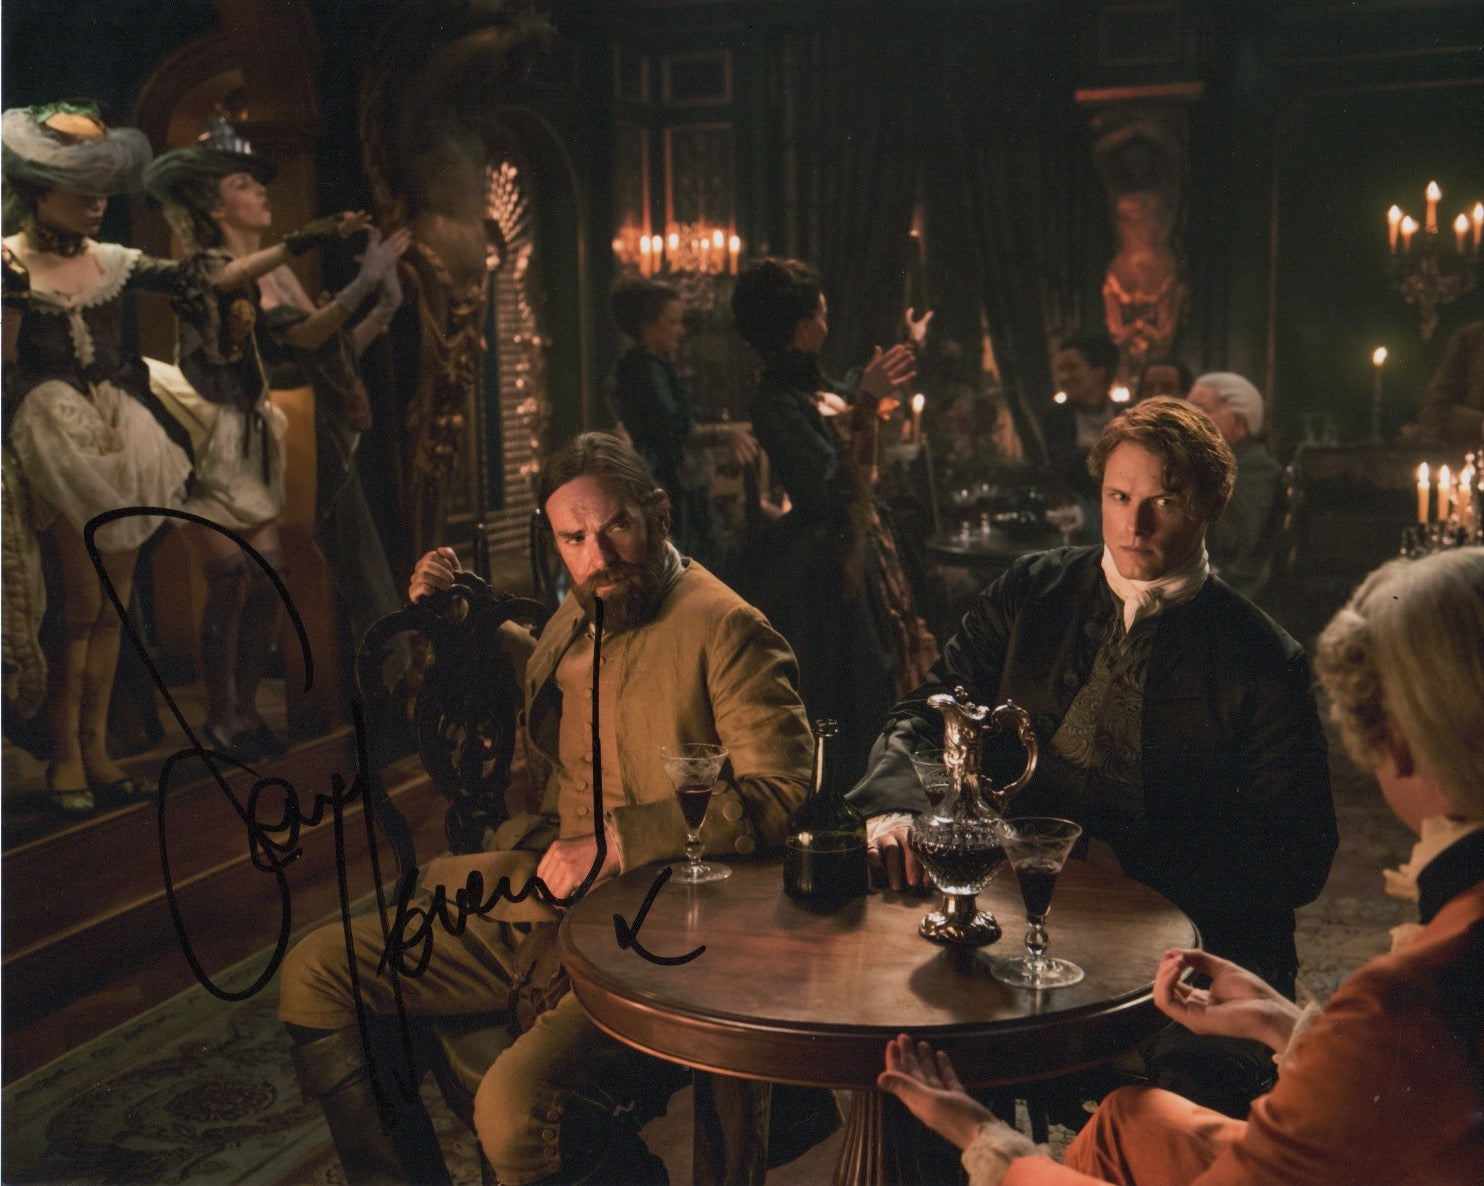 Sam Heughan Outlander Signed Autograph 8x10 Photo #4